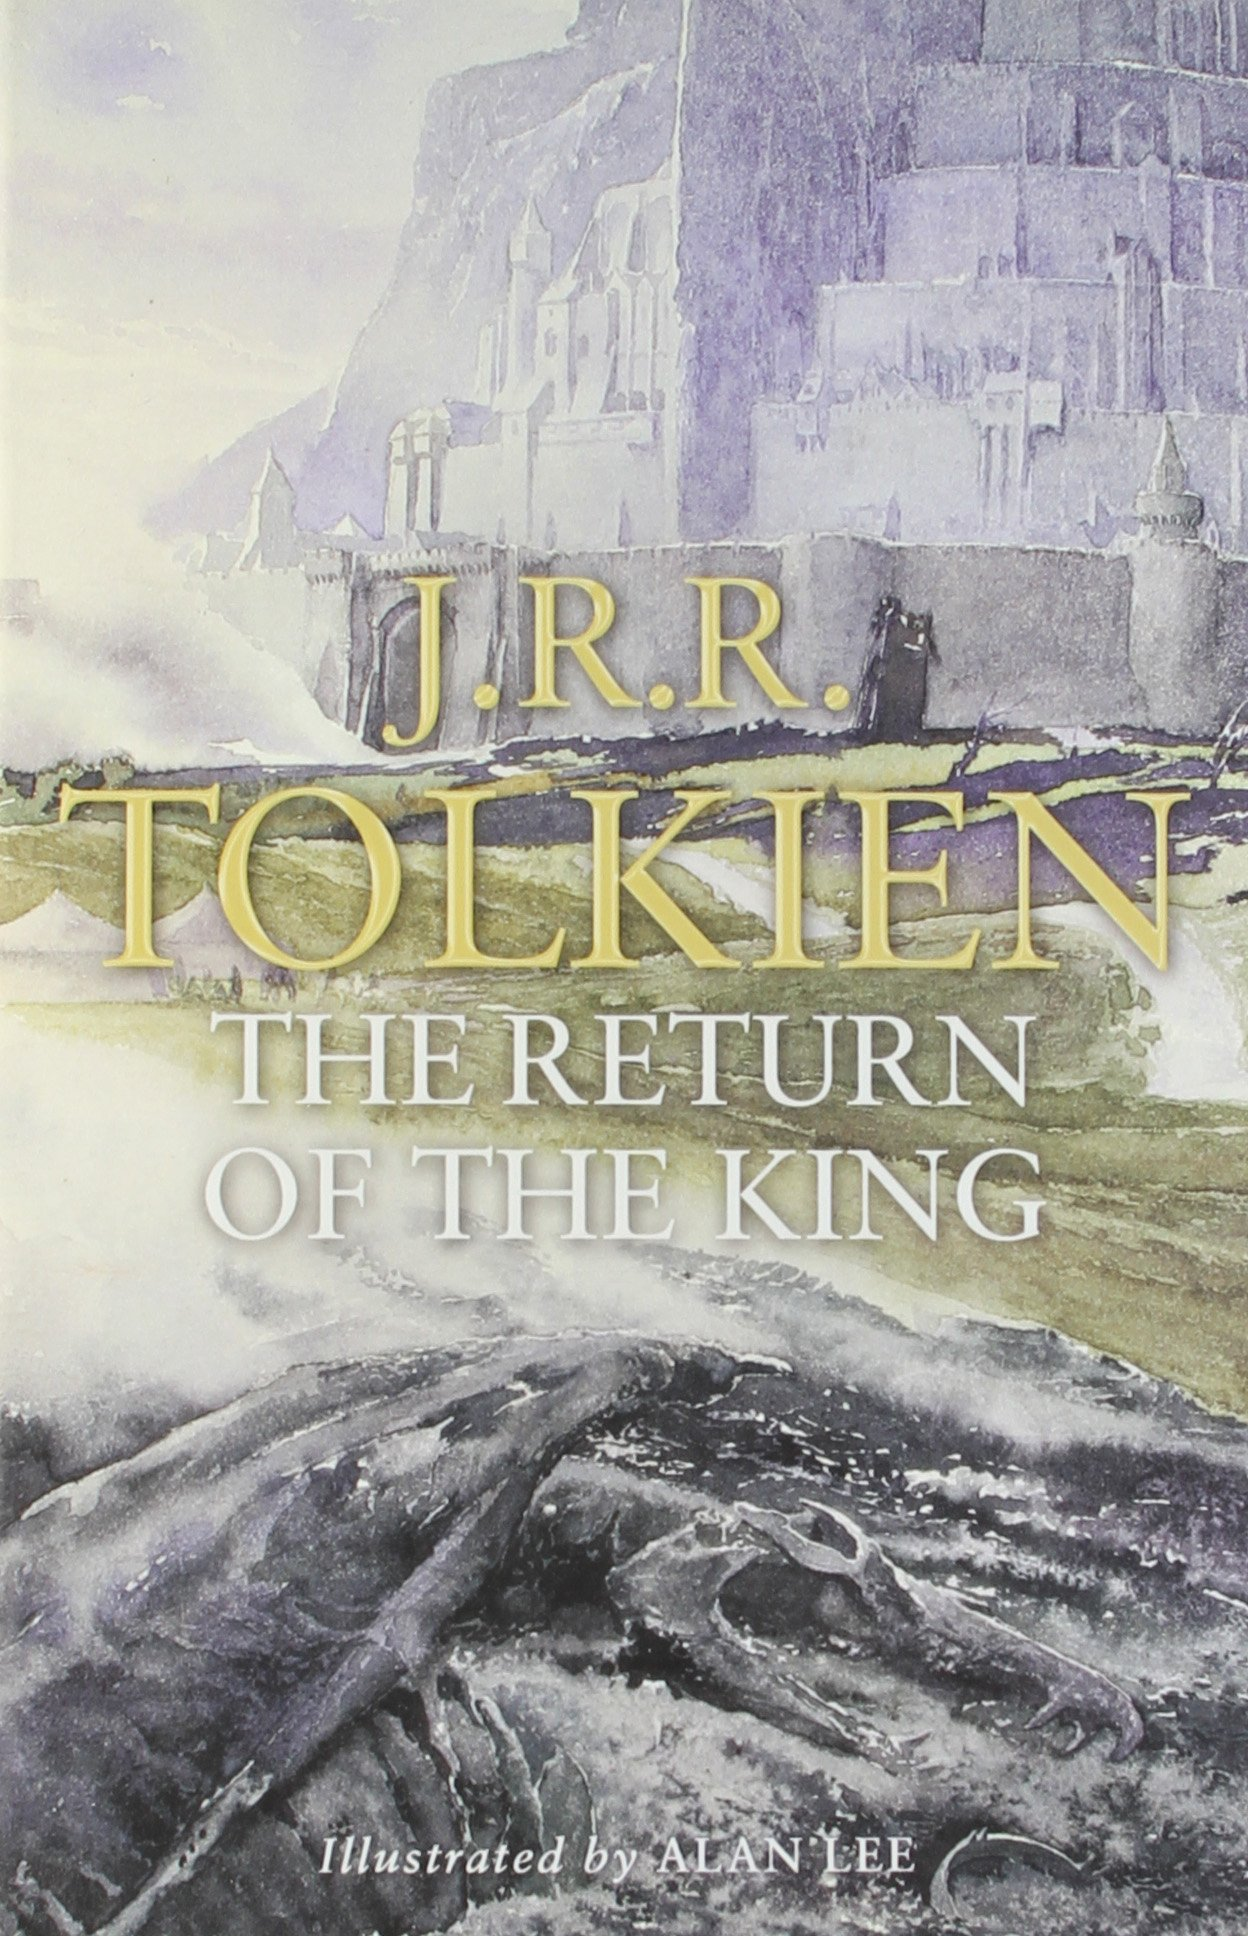 Read Online The Return of the King: Being the Third Part of the Lord of the Rings. by J.R.R. Tolkien (Pt. 3) PDF